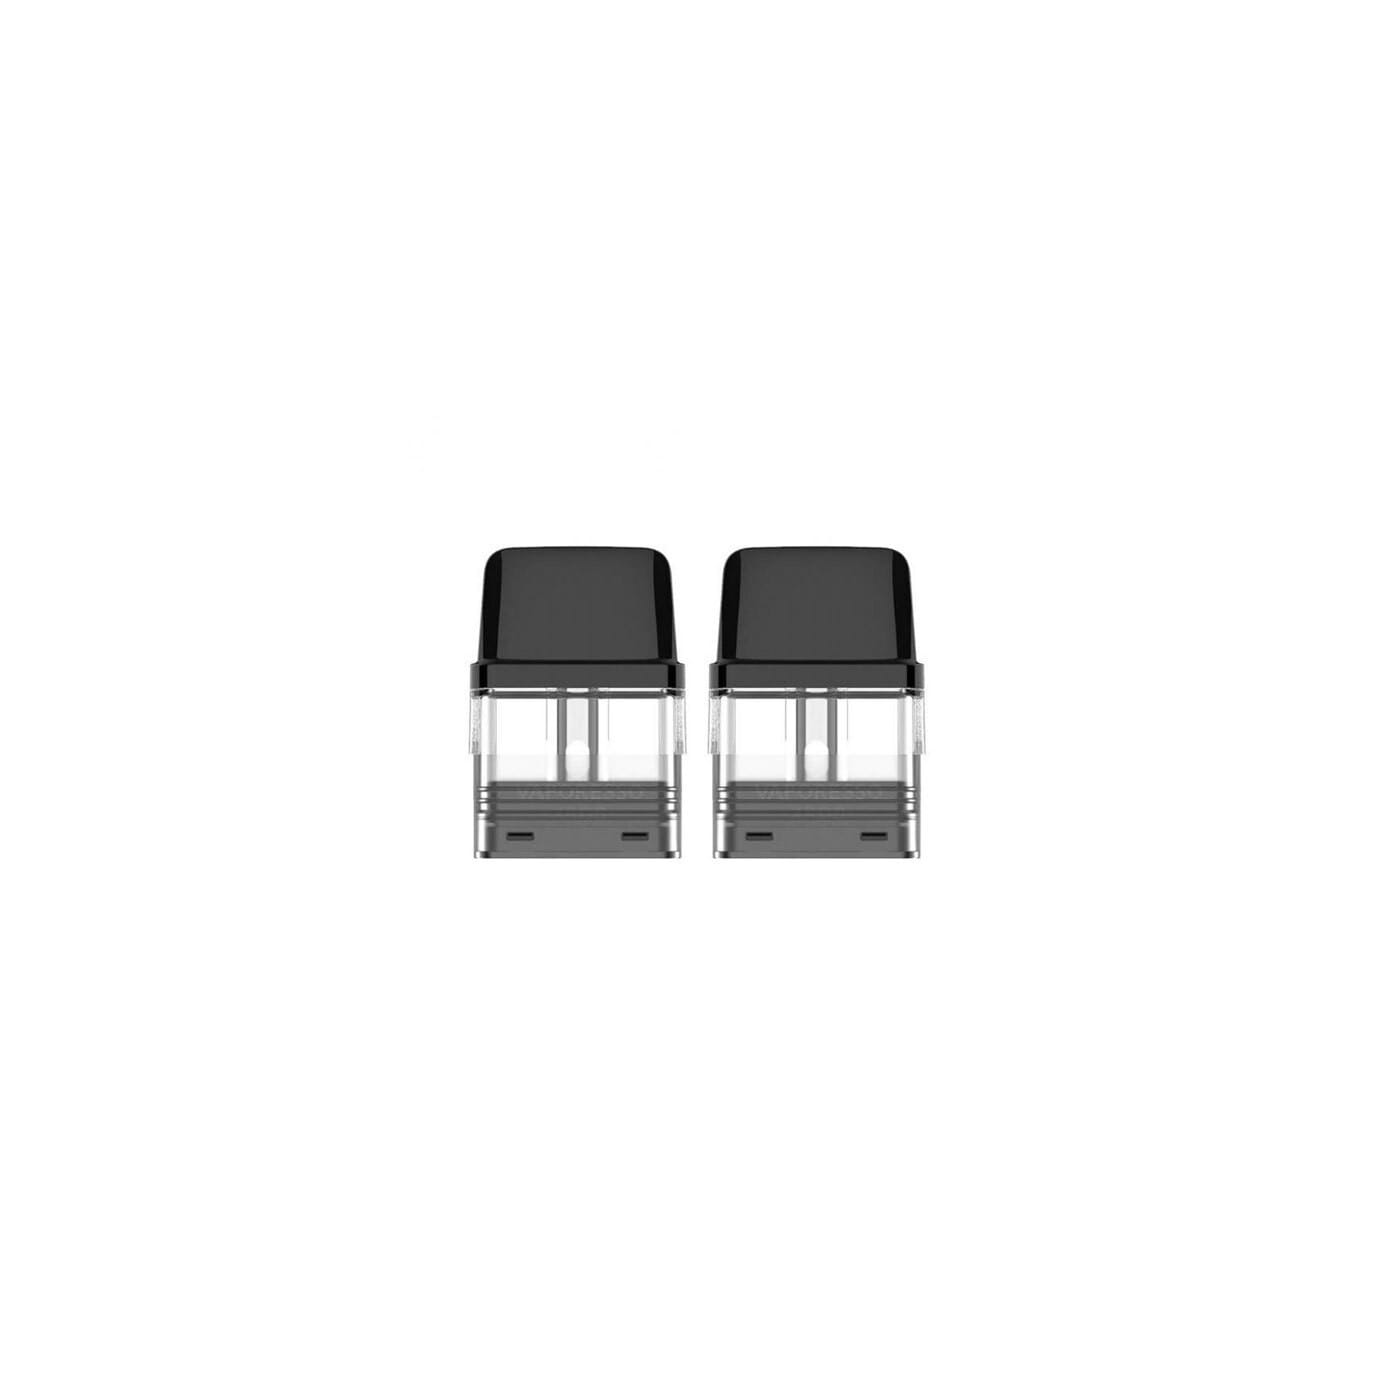 Vaporesso XROS Replacement Pod - 2 Pack